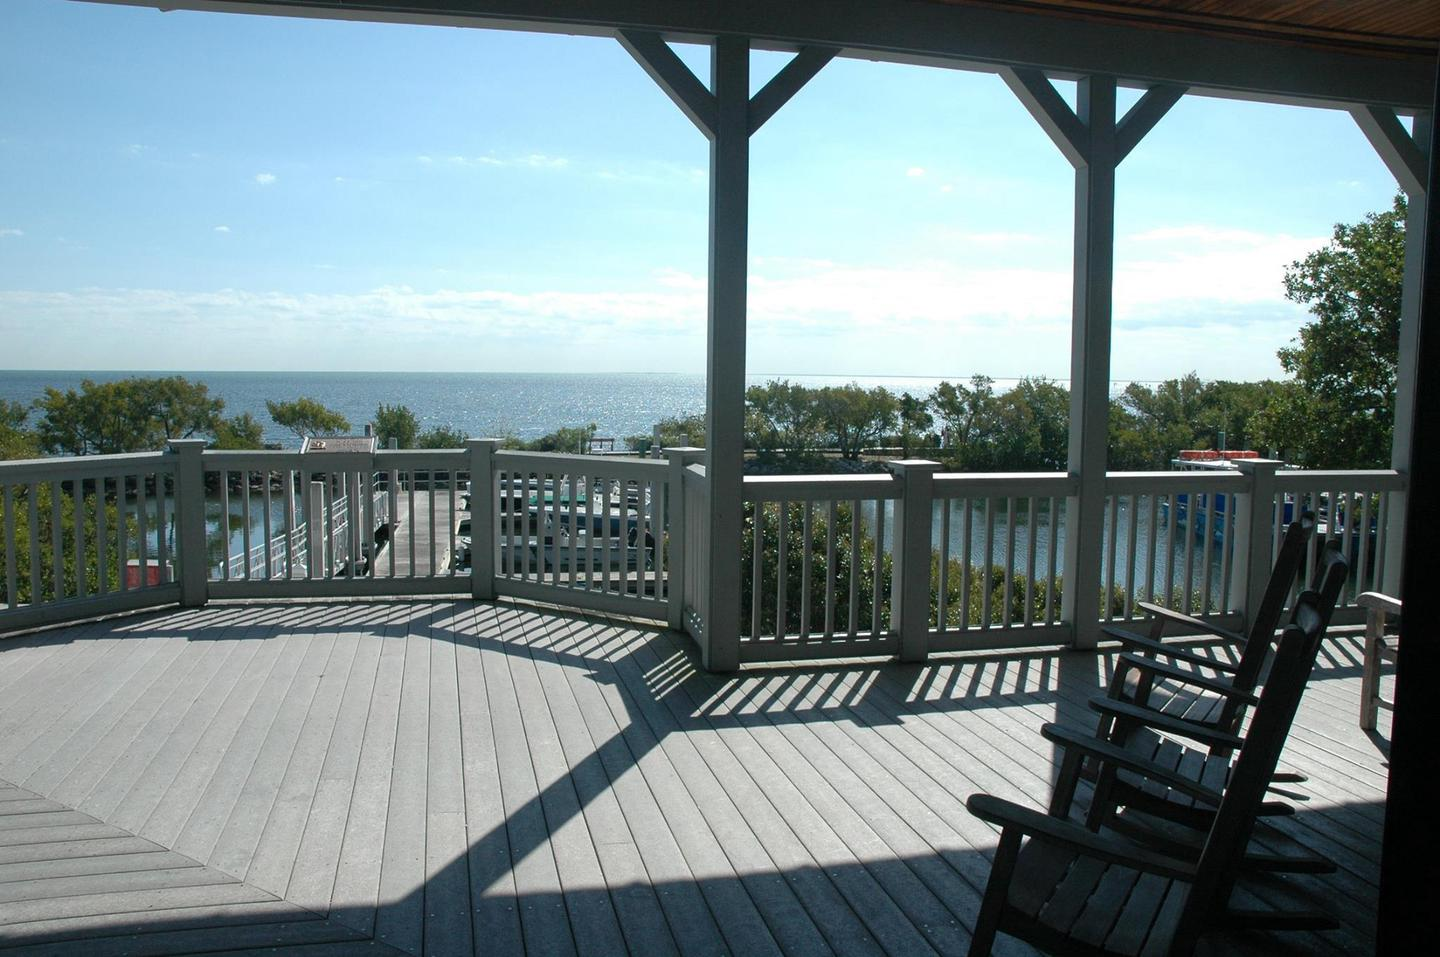 View from the Visitor Center PorchRelax and enjoy the panoramic view of Biscayne Bay while sitting in one of the rocking chairs on the porch.